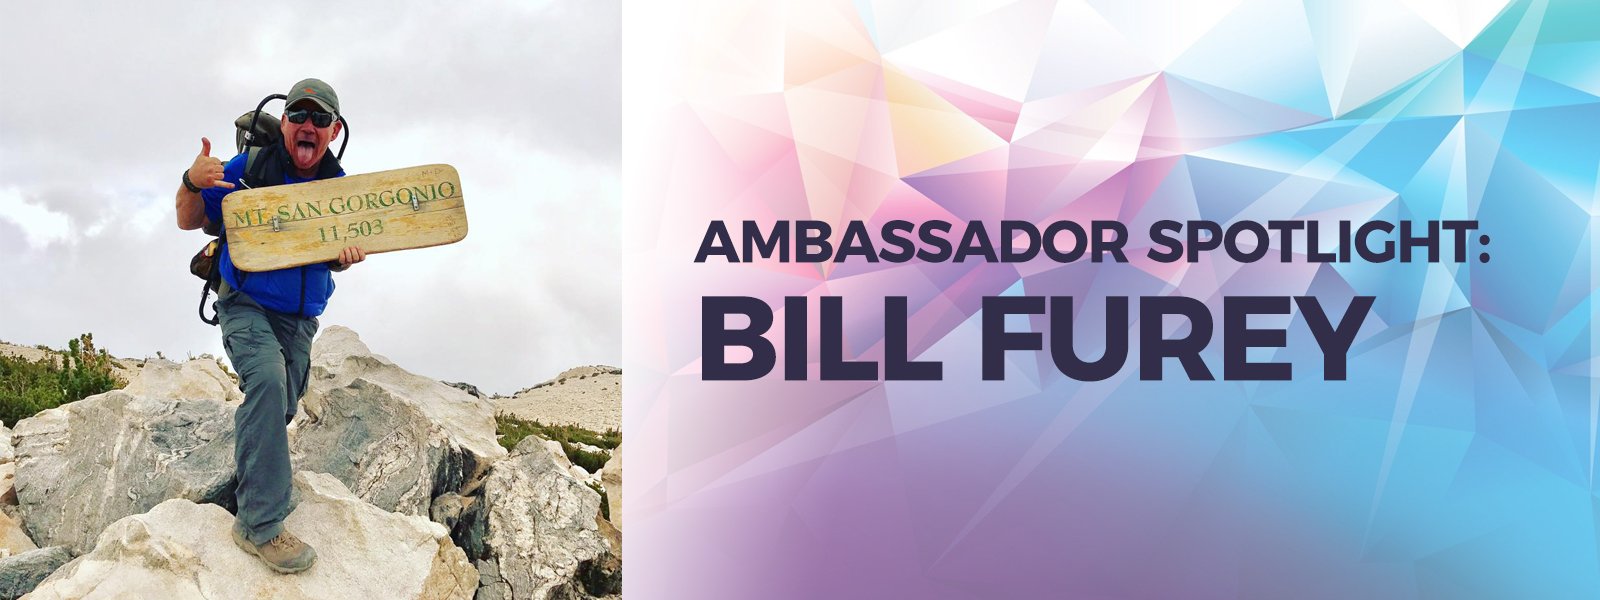 Ambassador Spotlight: Bill Furey